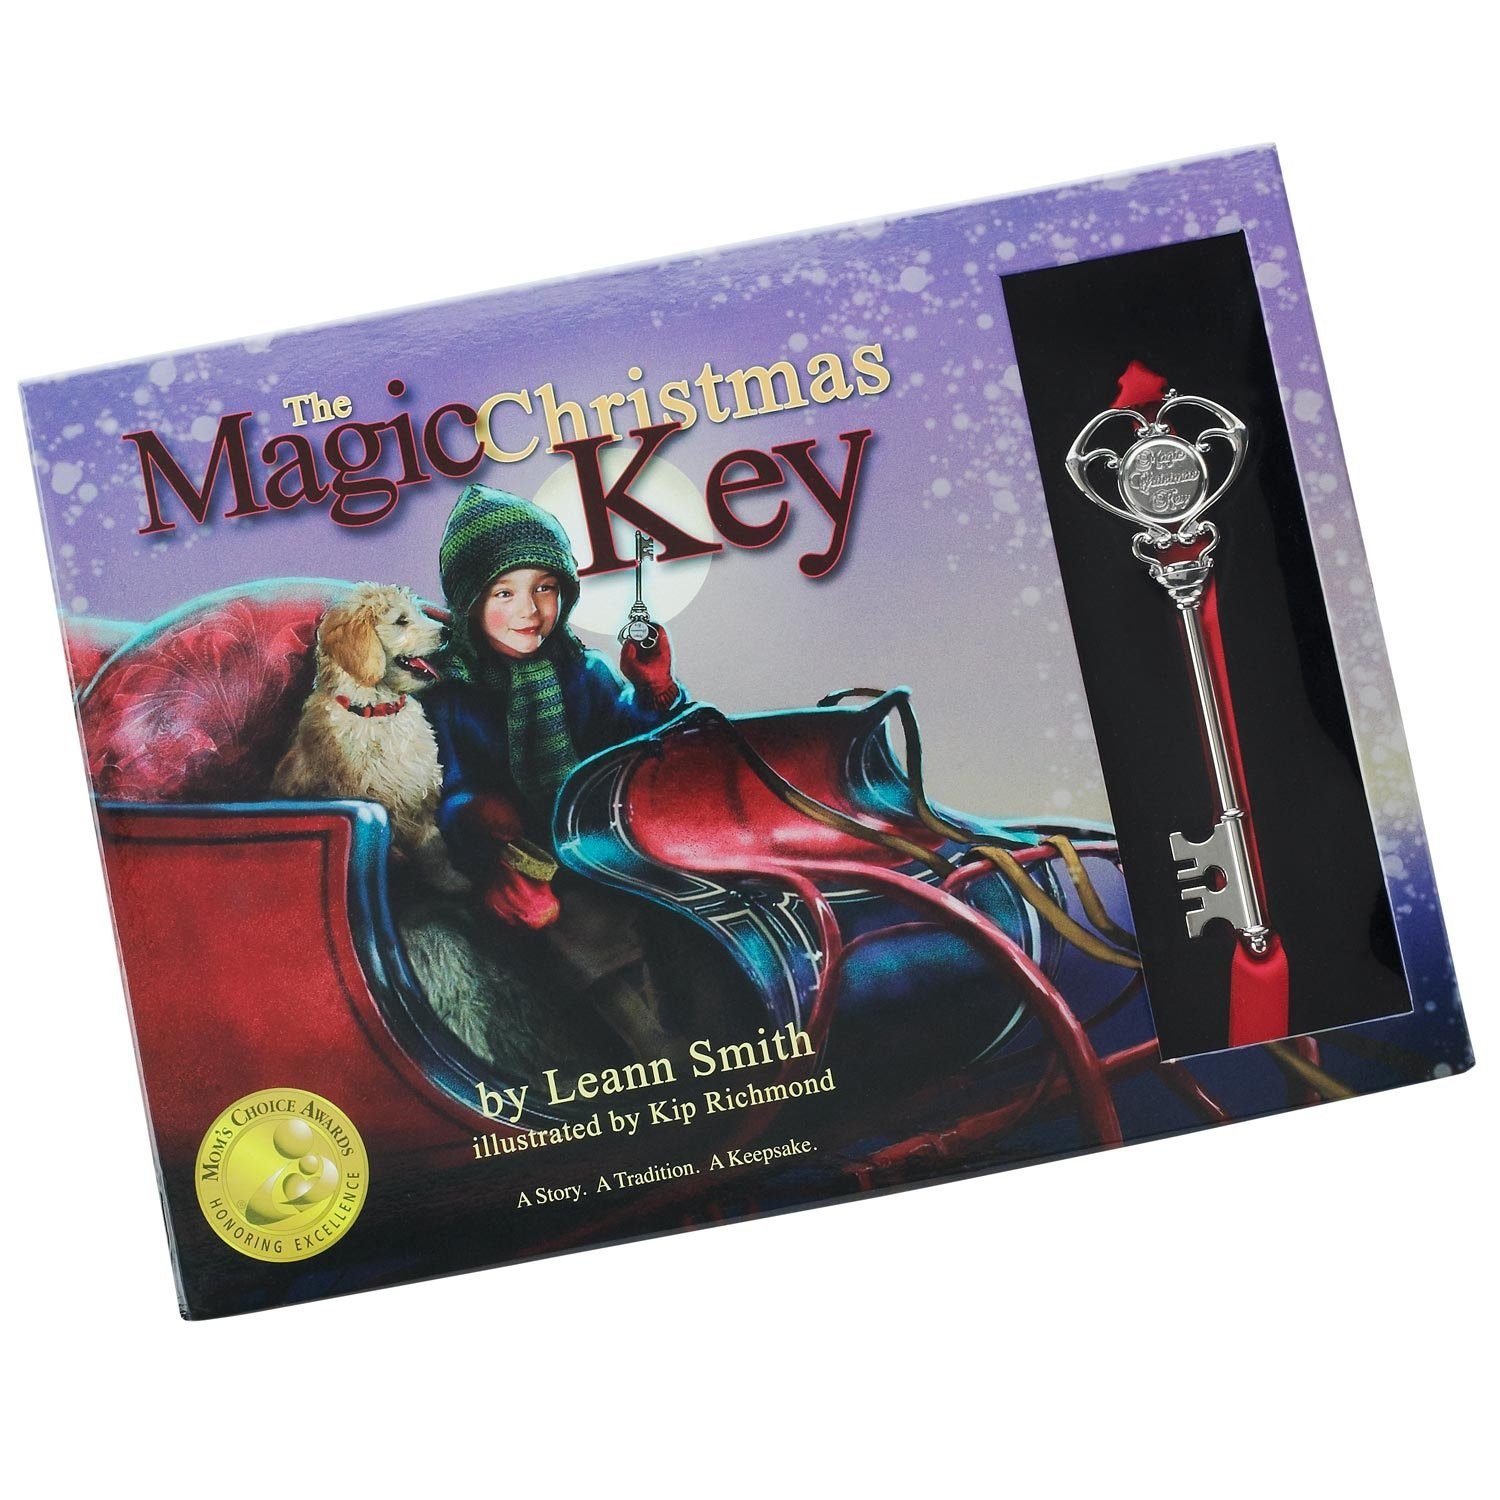 Download The Magic Christmas Key Book and Key Gift Set PDF